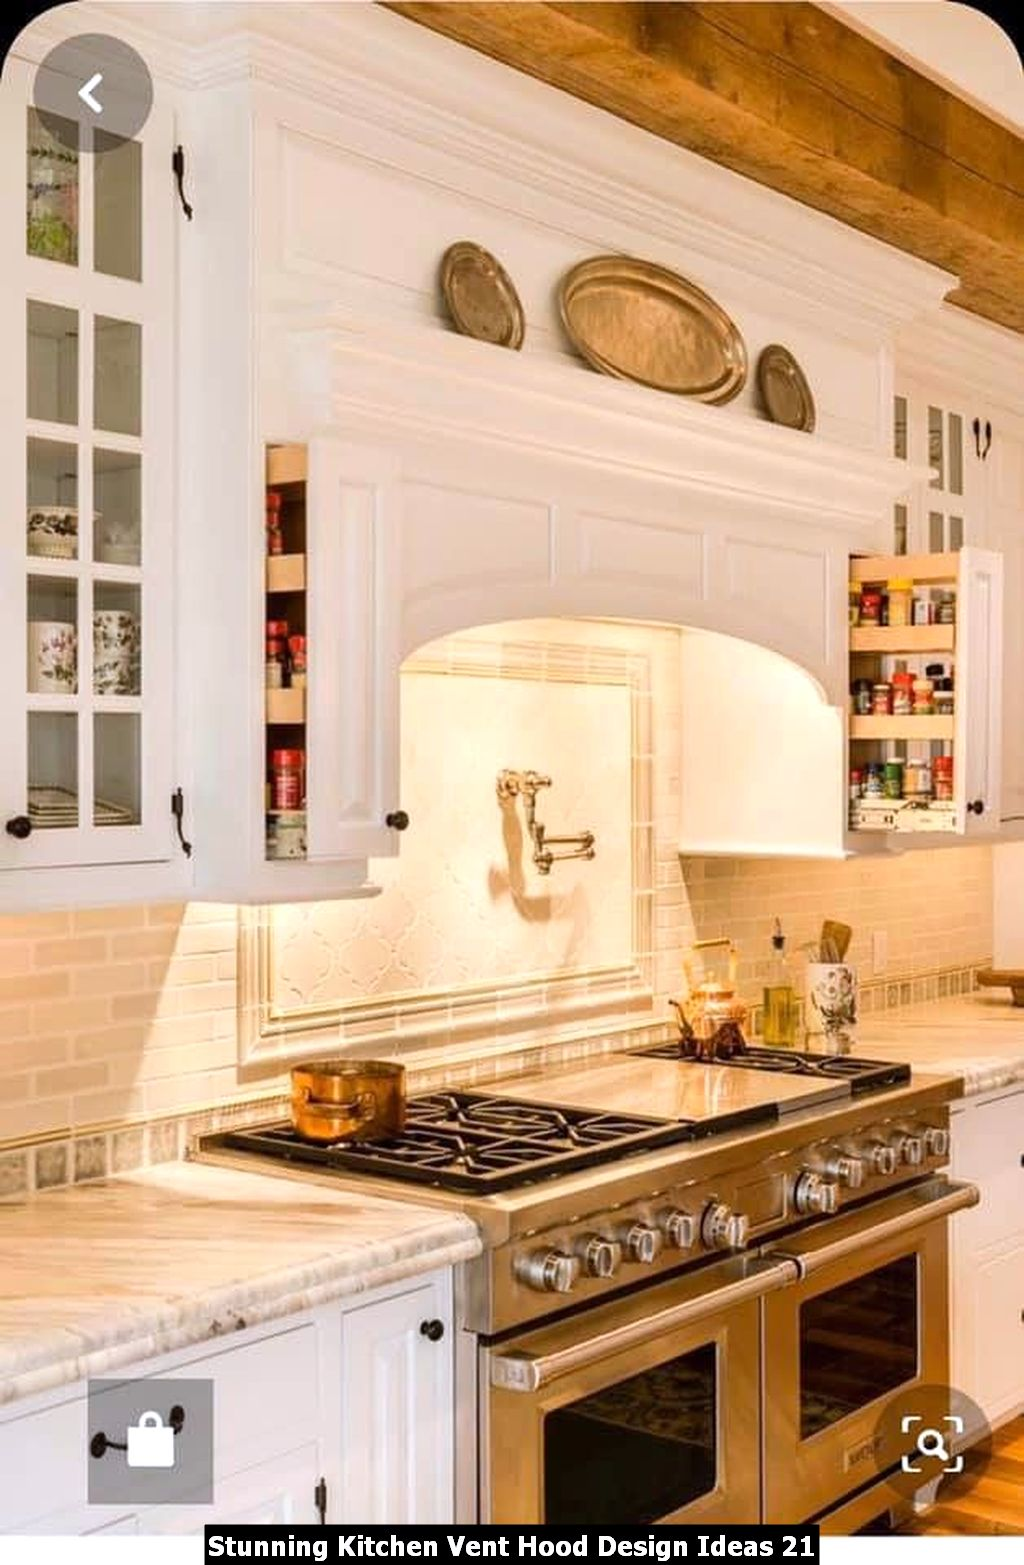 Stunning Kitchen Vent Hood Design Ideas 21